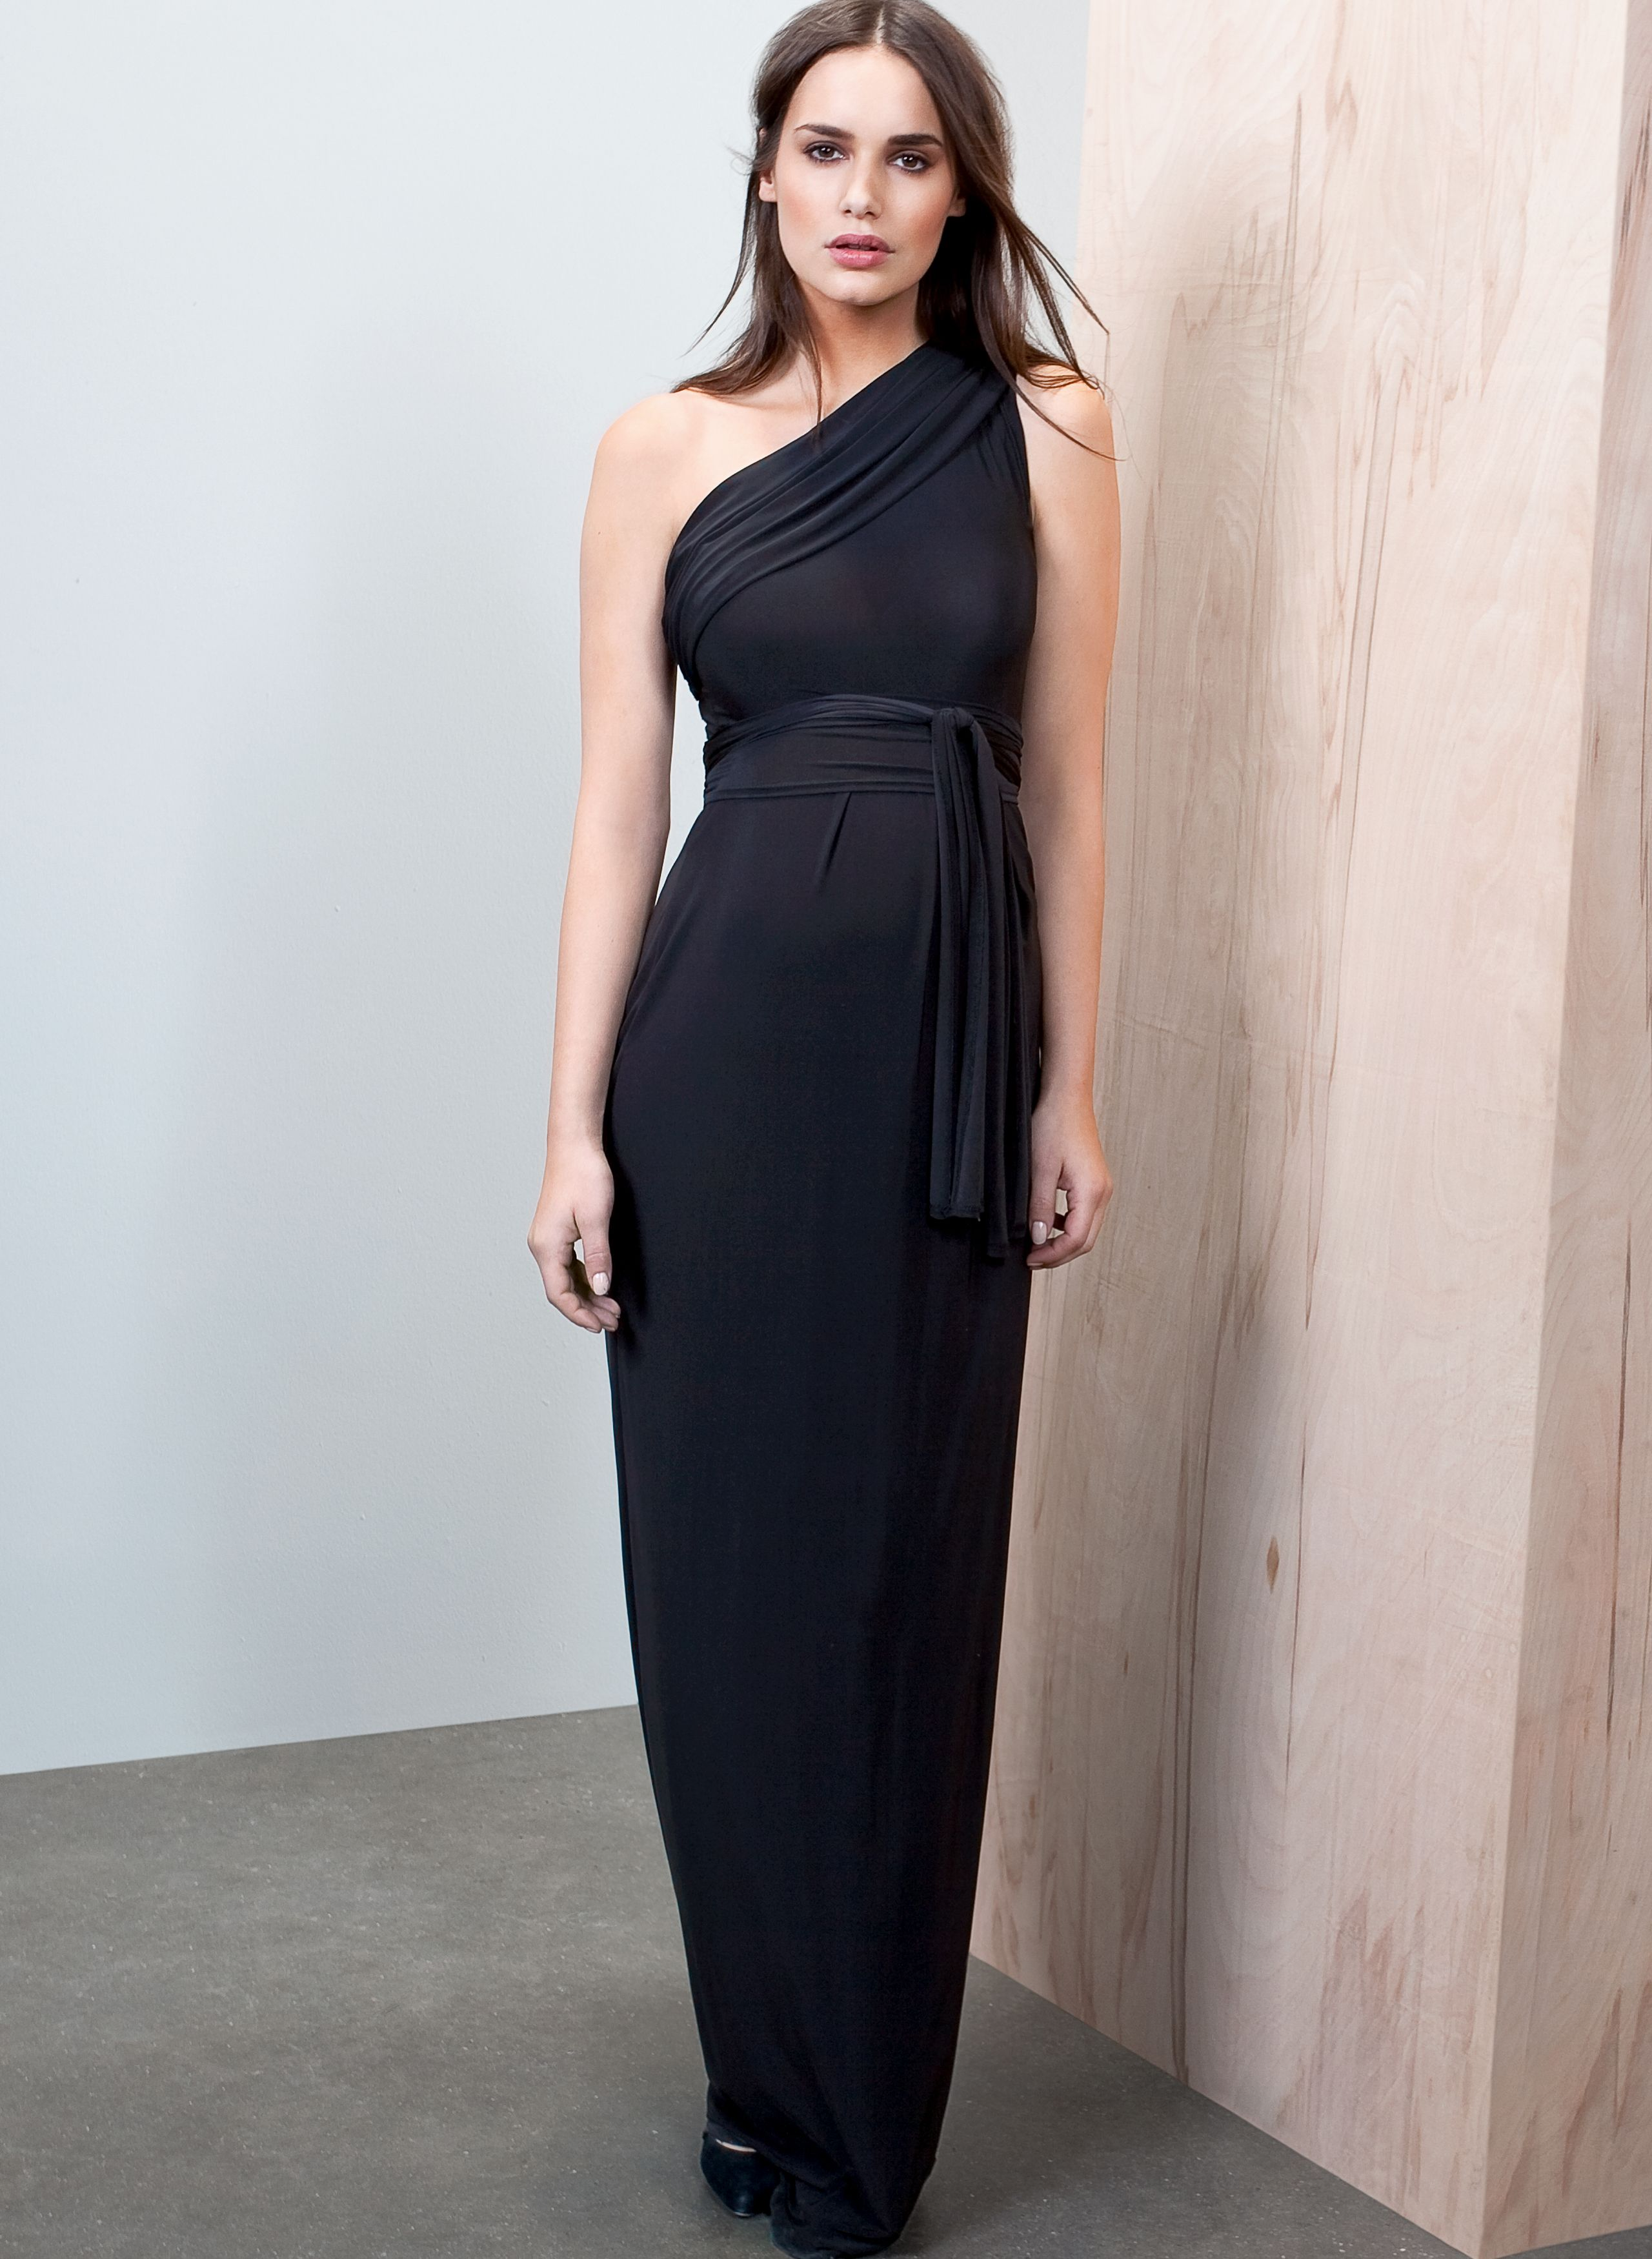 Belmont maternity maxi dress isabella oliver carrying in style belmont maternity dress ombrellifo Images